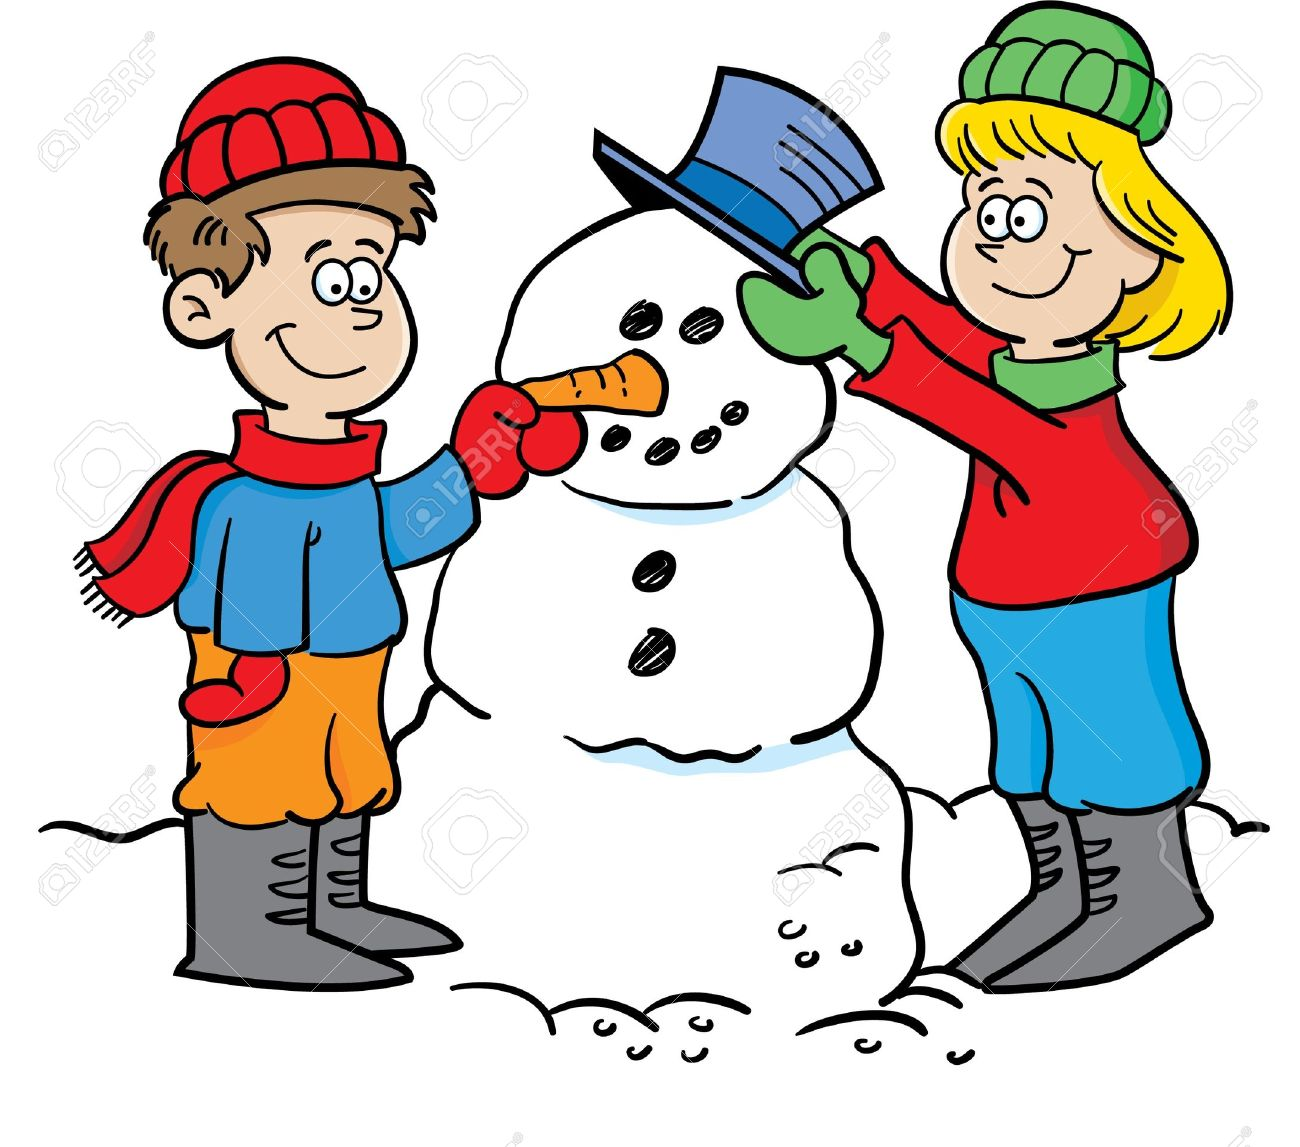 Cartoon illustration of two children building a snowman Stock Vector - 14989127